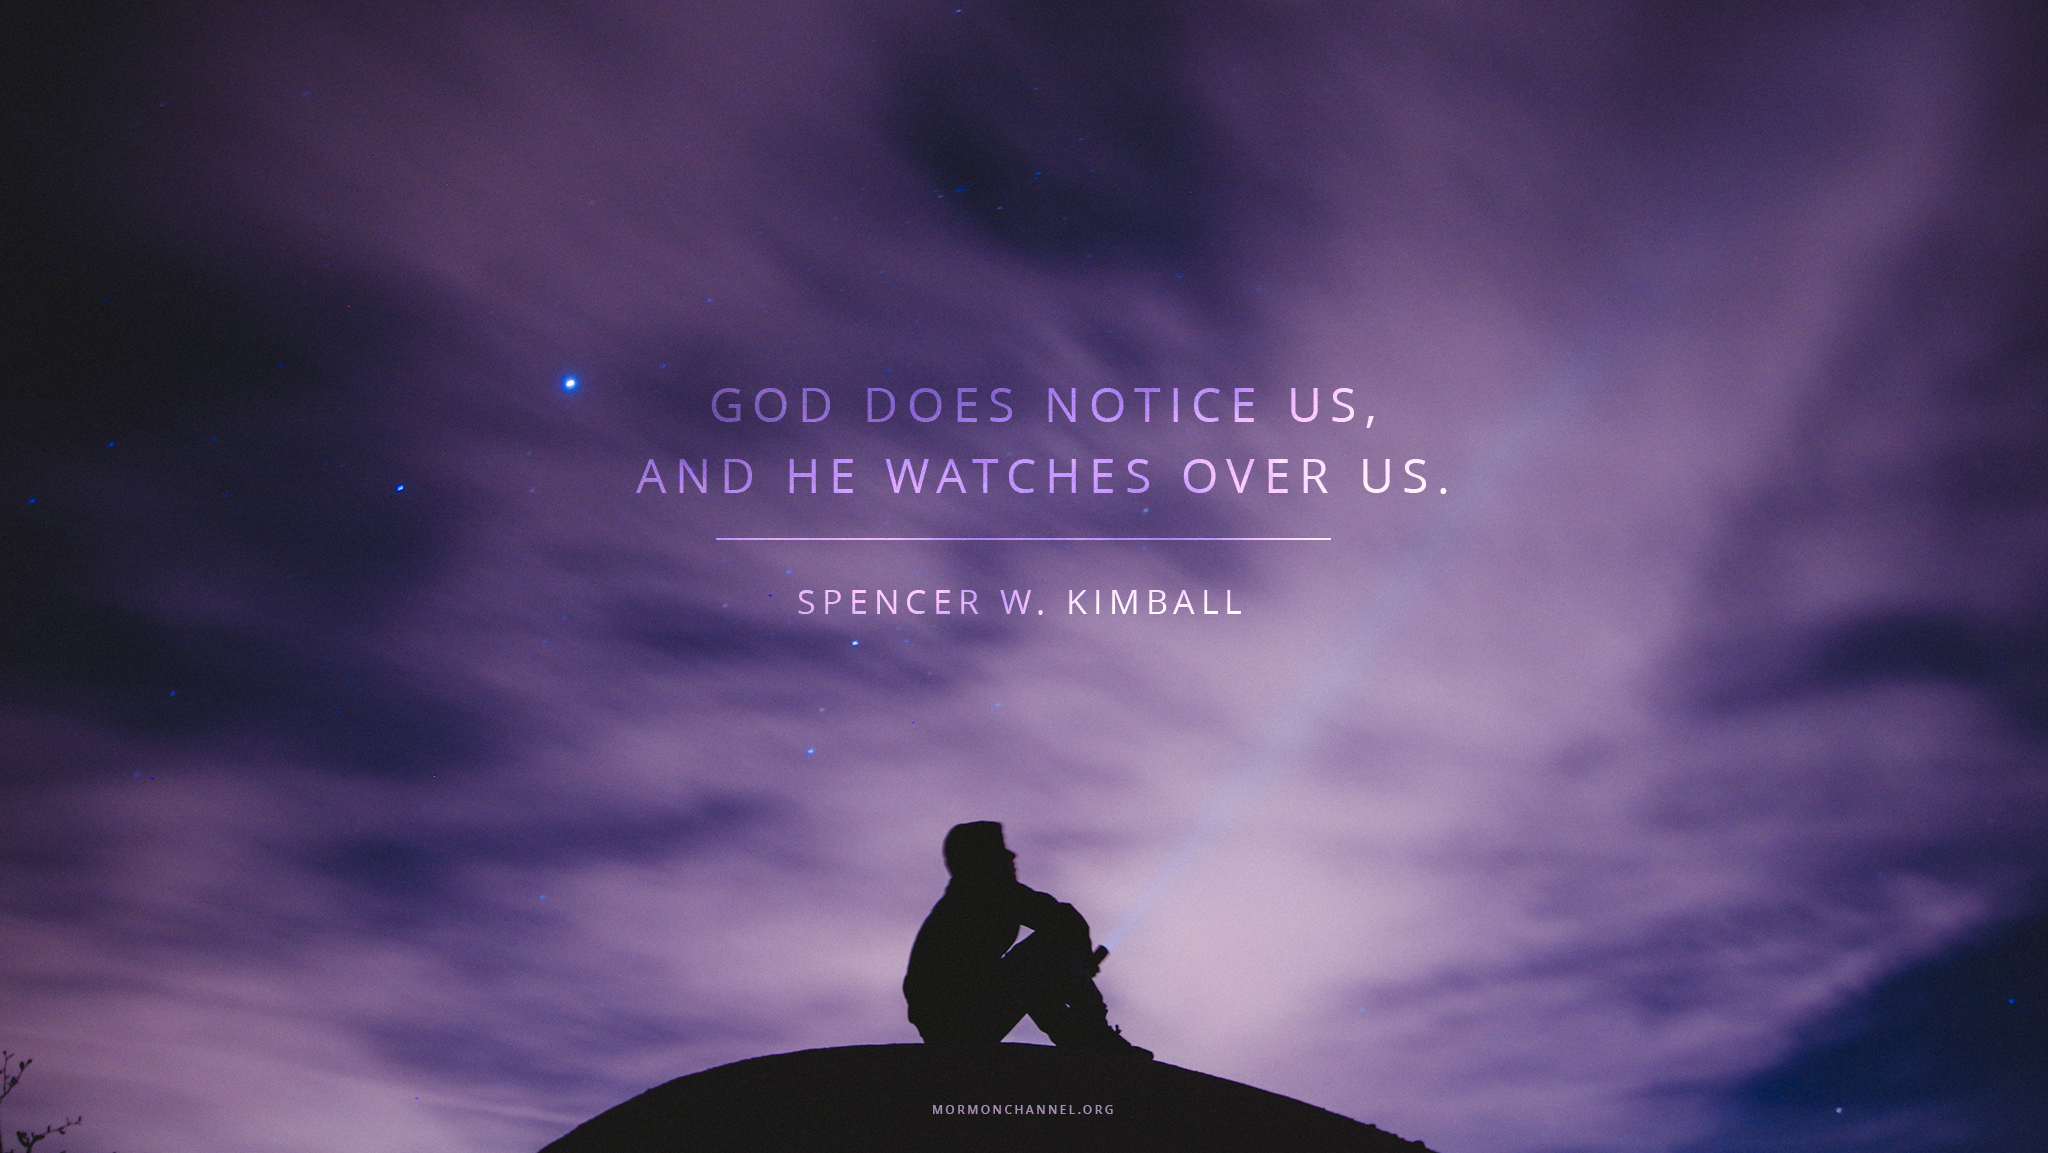 daily quote god does notice us latter day saints channel